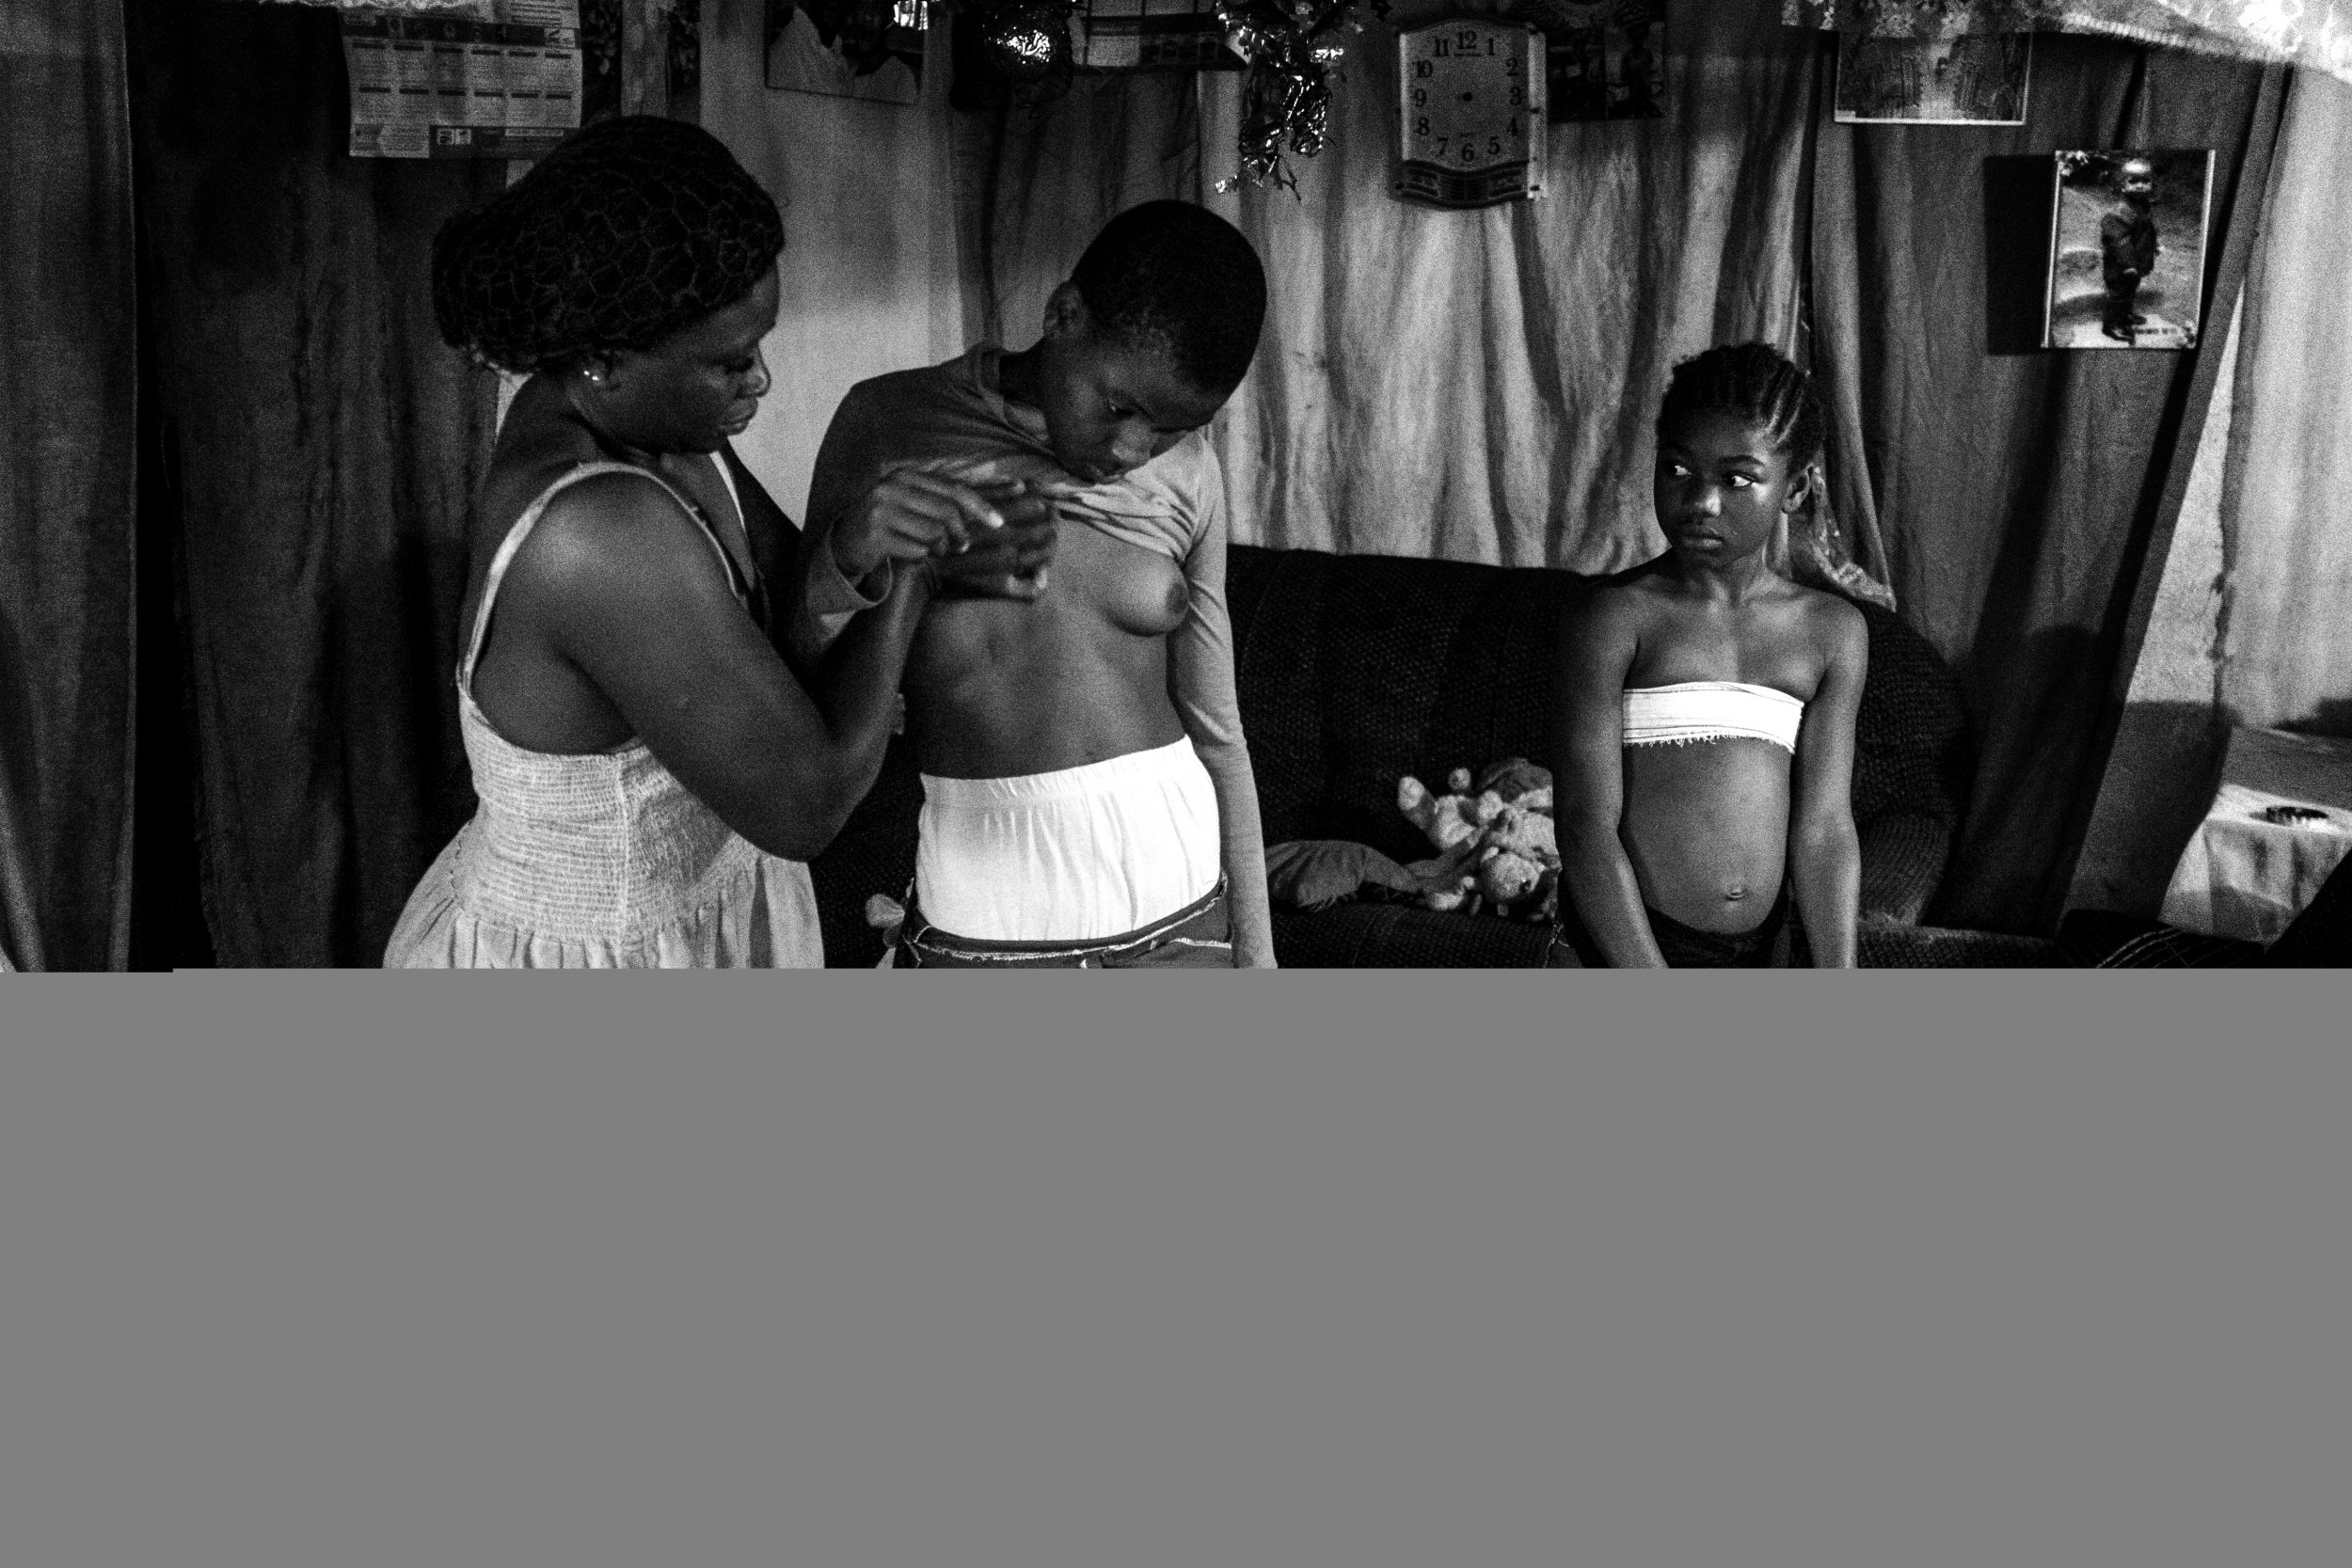 08_11_BreastIroning_06